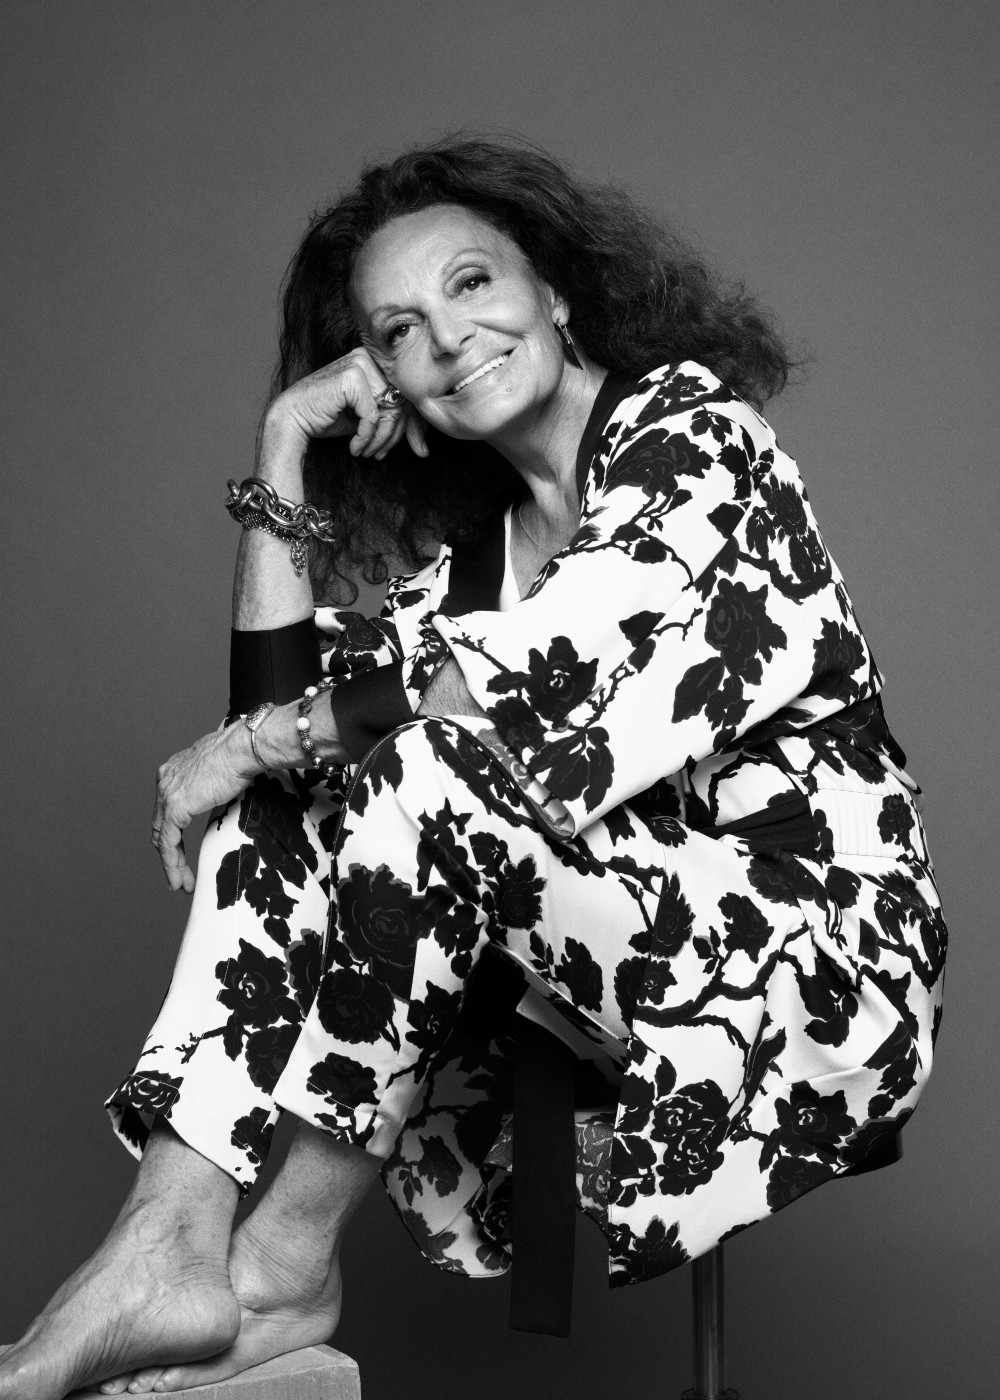 H&M collaborated with Diane von Furstenberg on a home goods collection